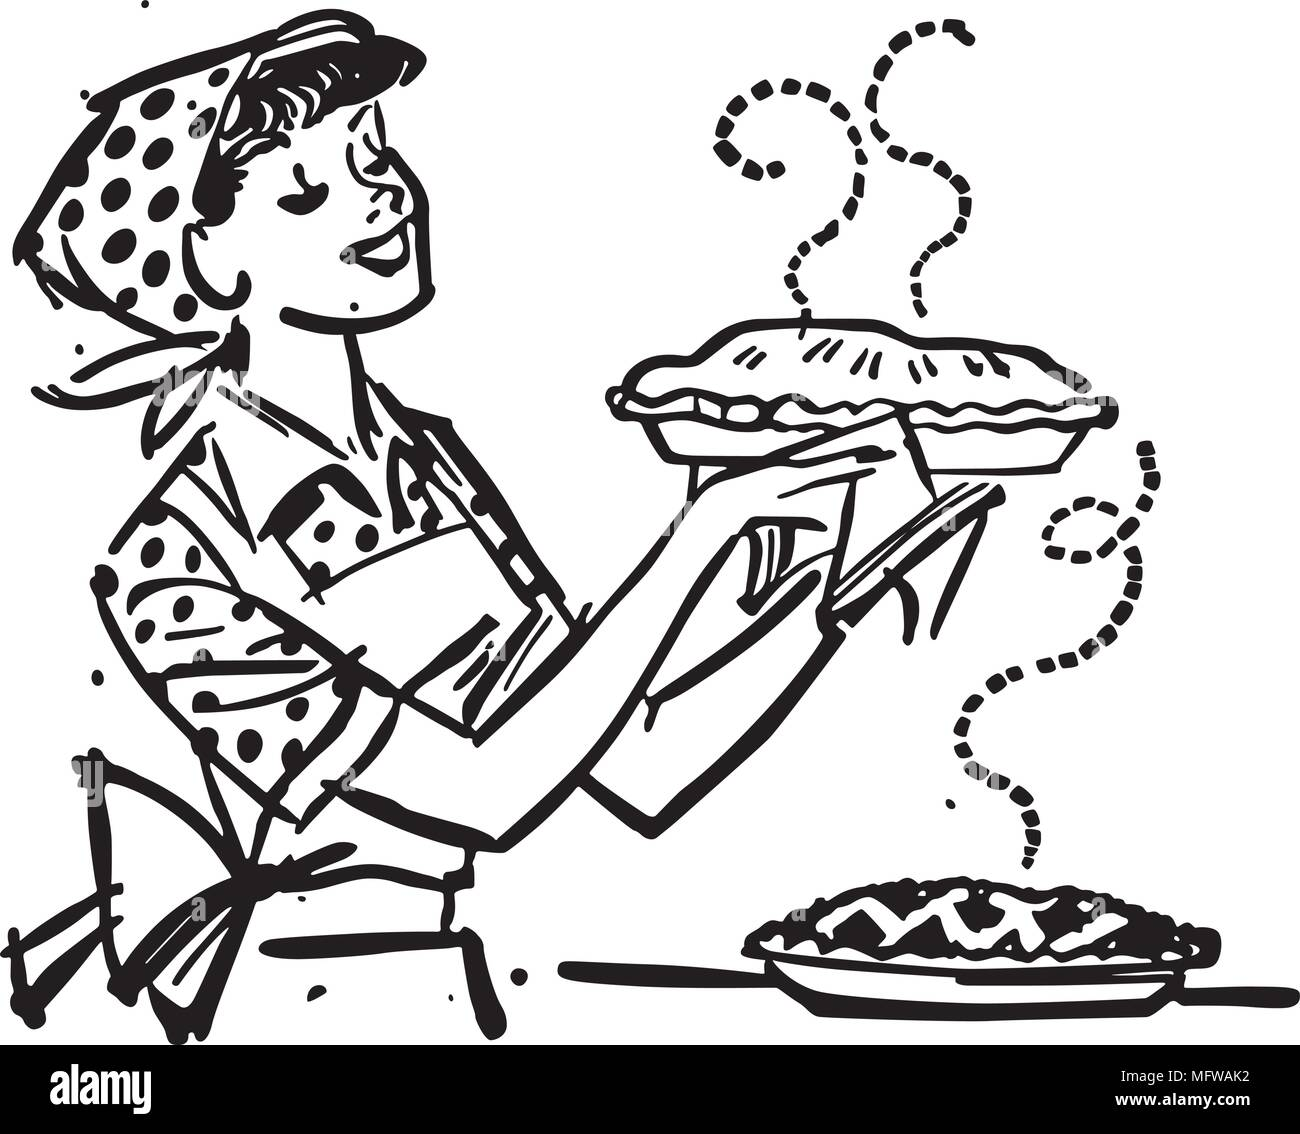 hight resolution of mom with fresh baked pies retro clipart illustration